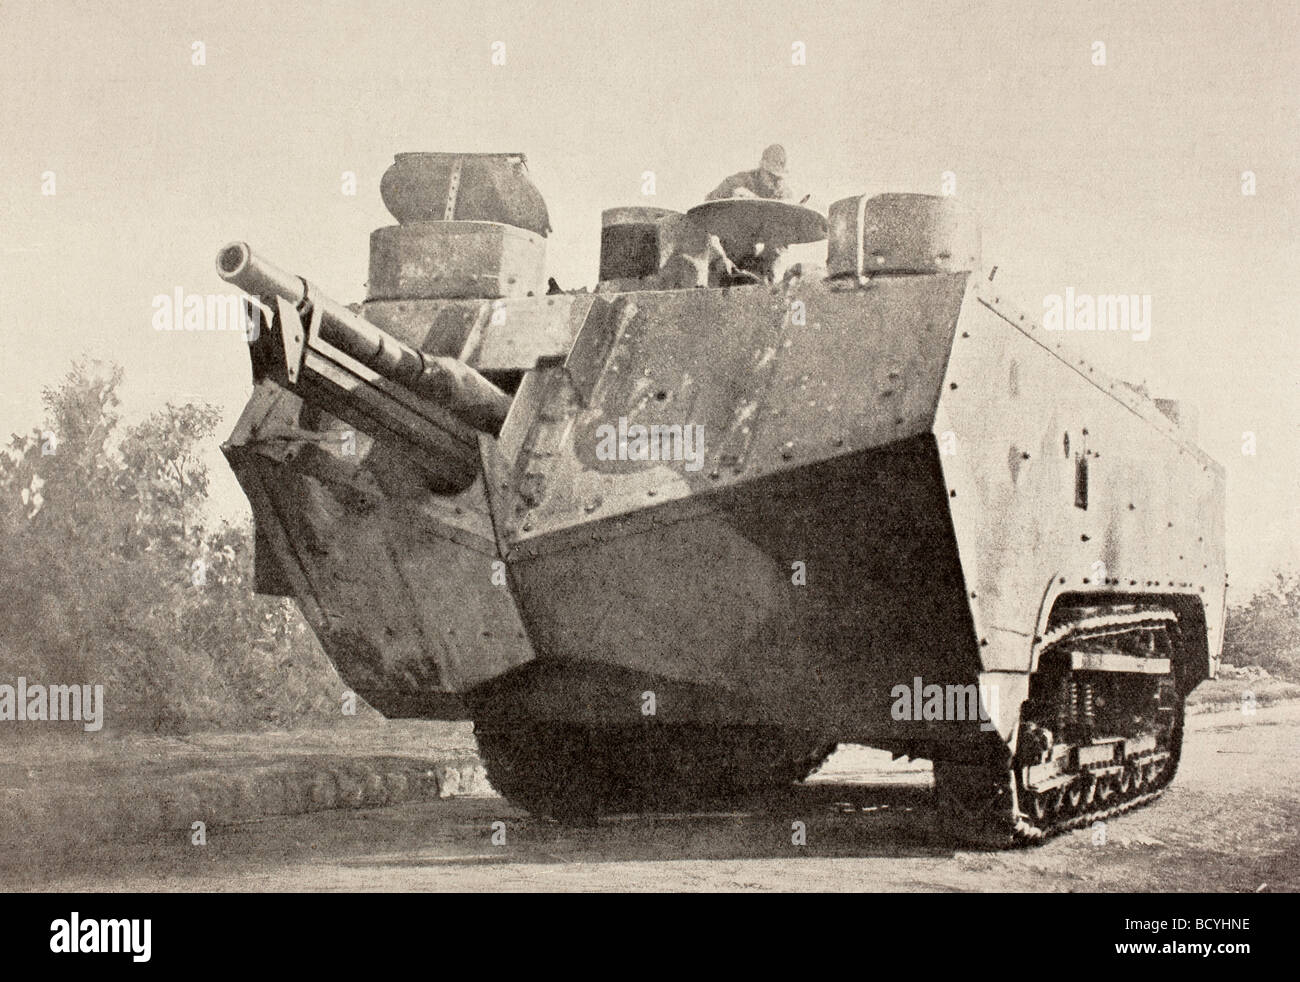 First World War French assault tank armed with rapid fire cannon. - Stock Image